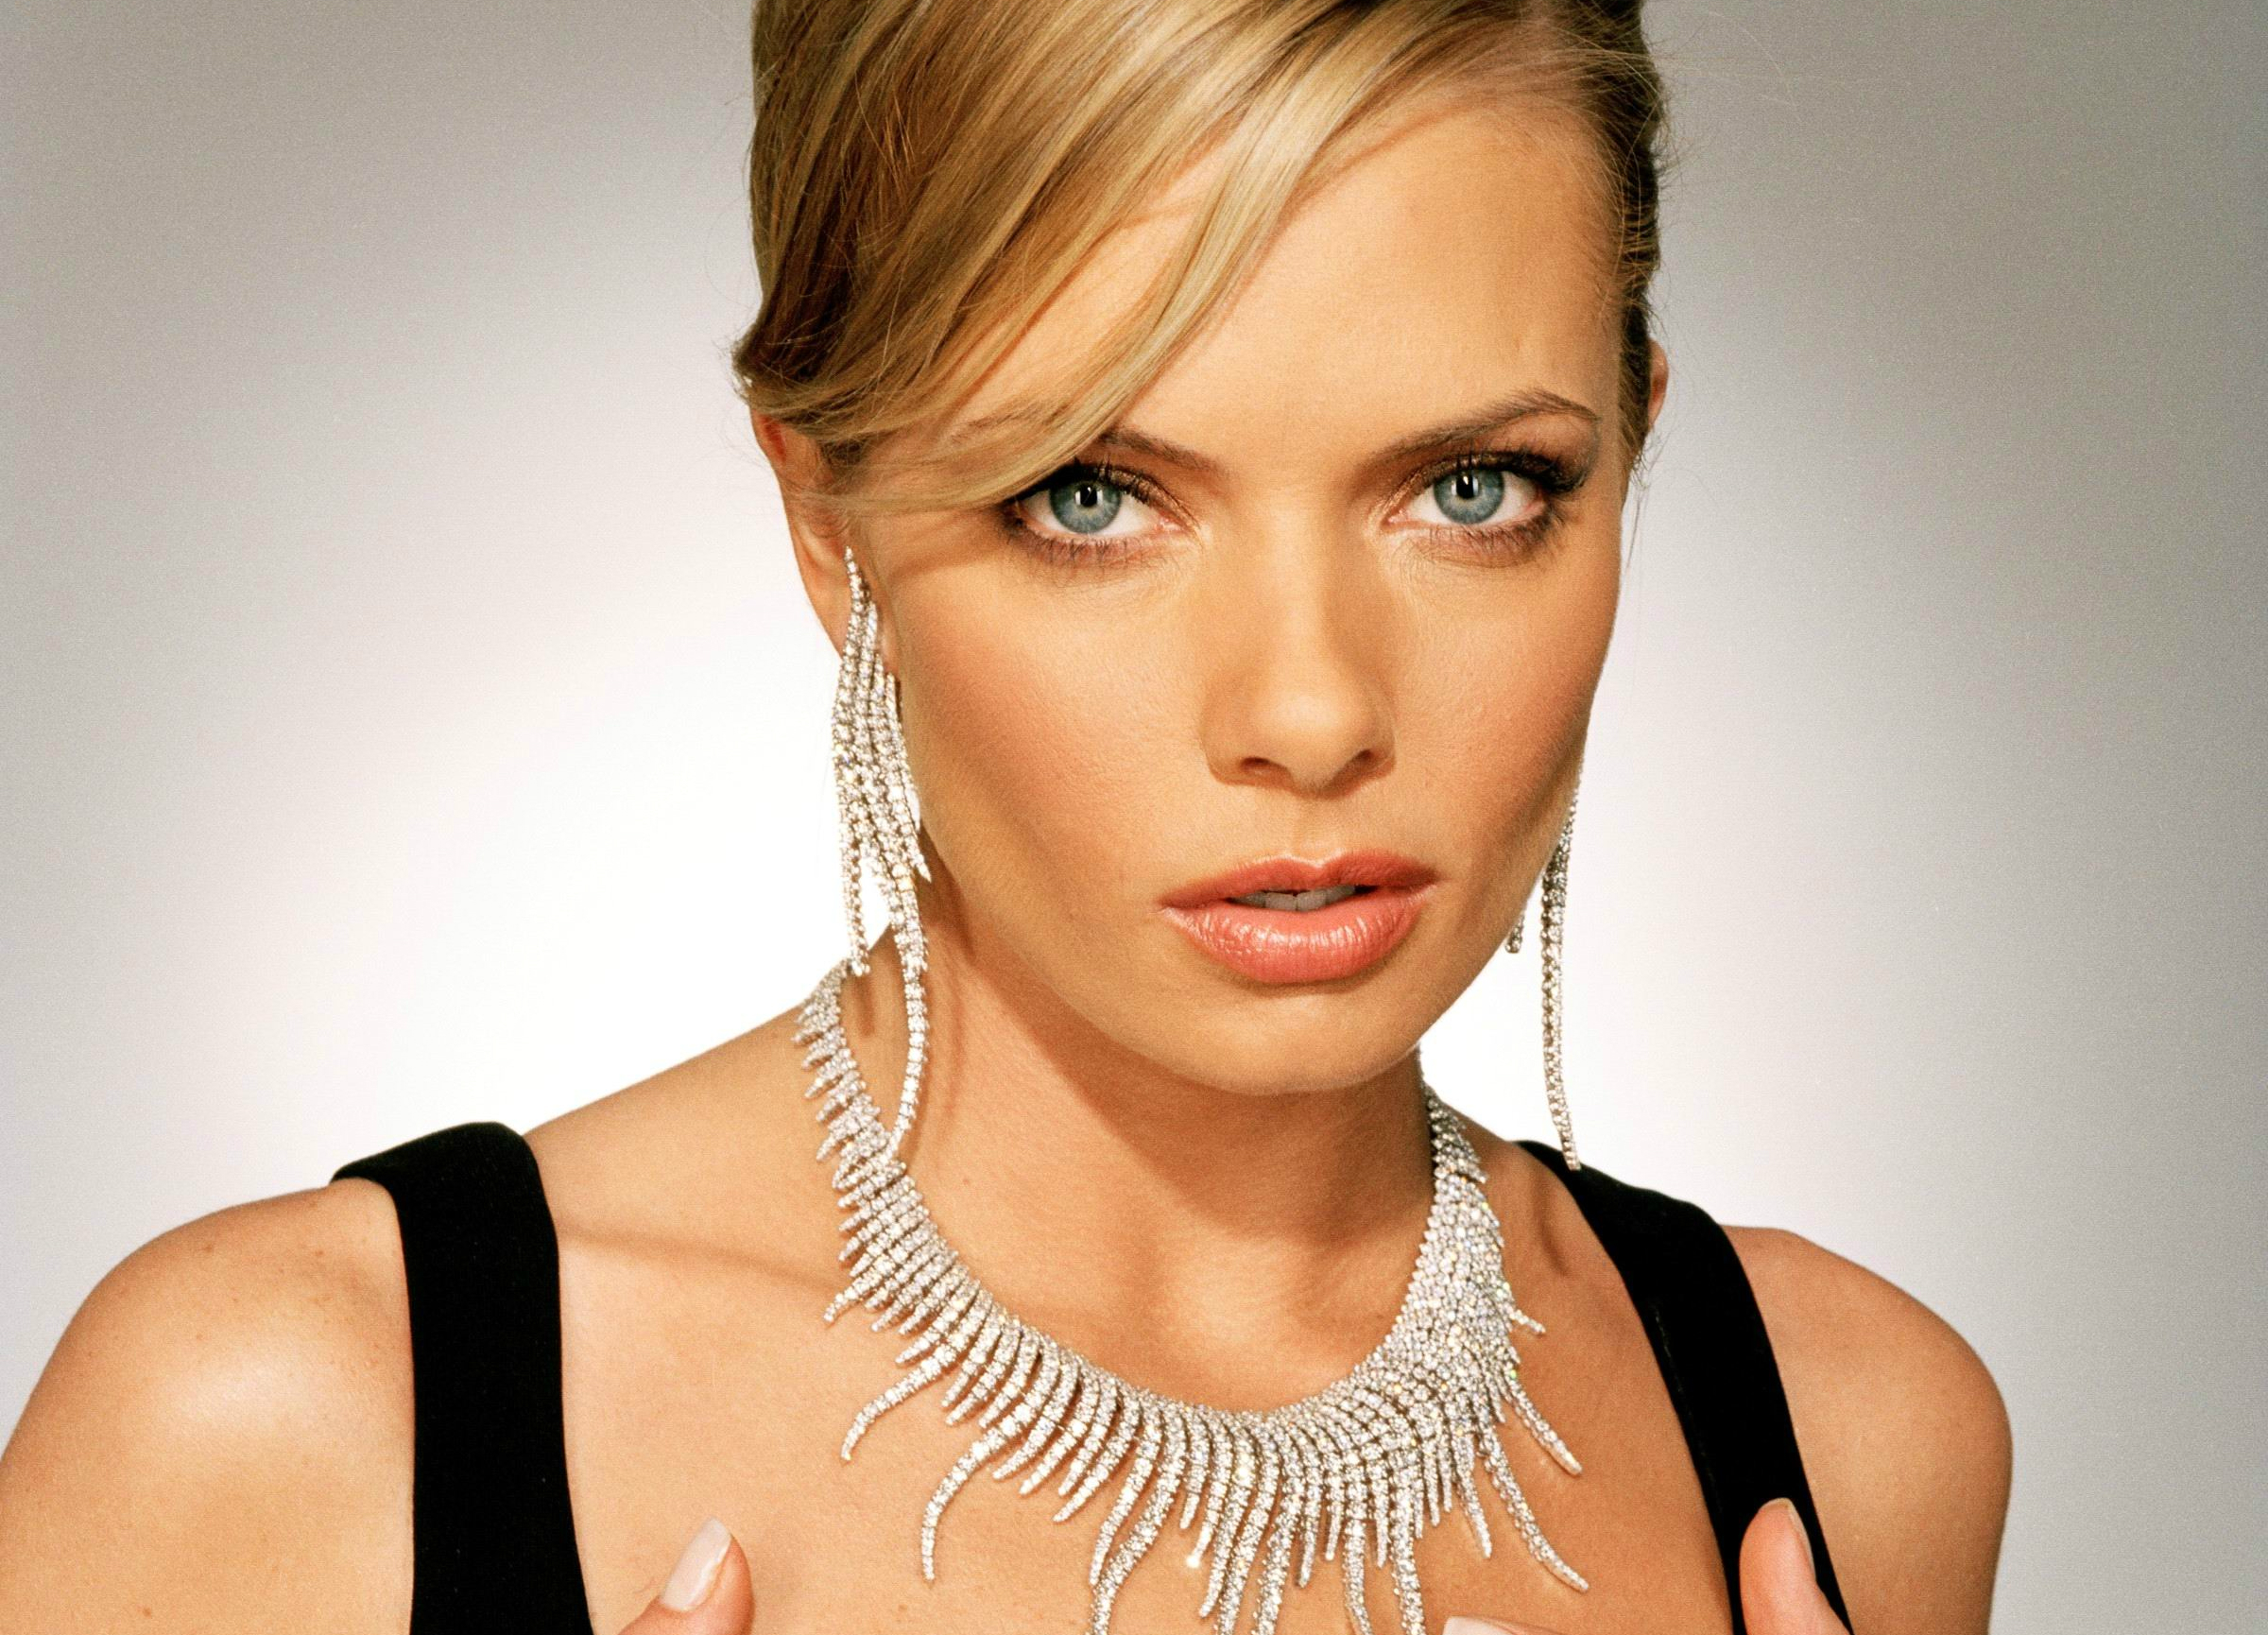 2400x1730 - Jaime Pressly Wallpapers 2